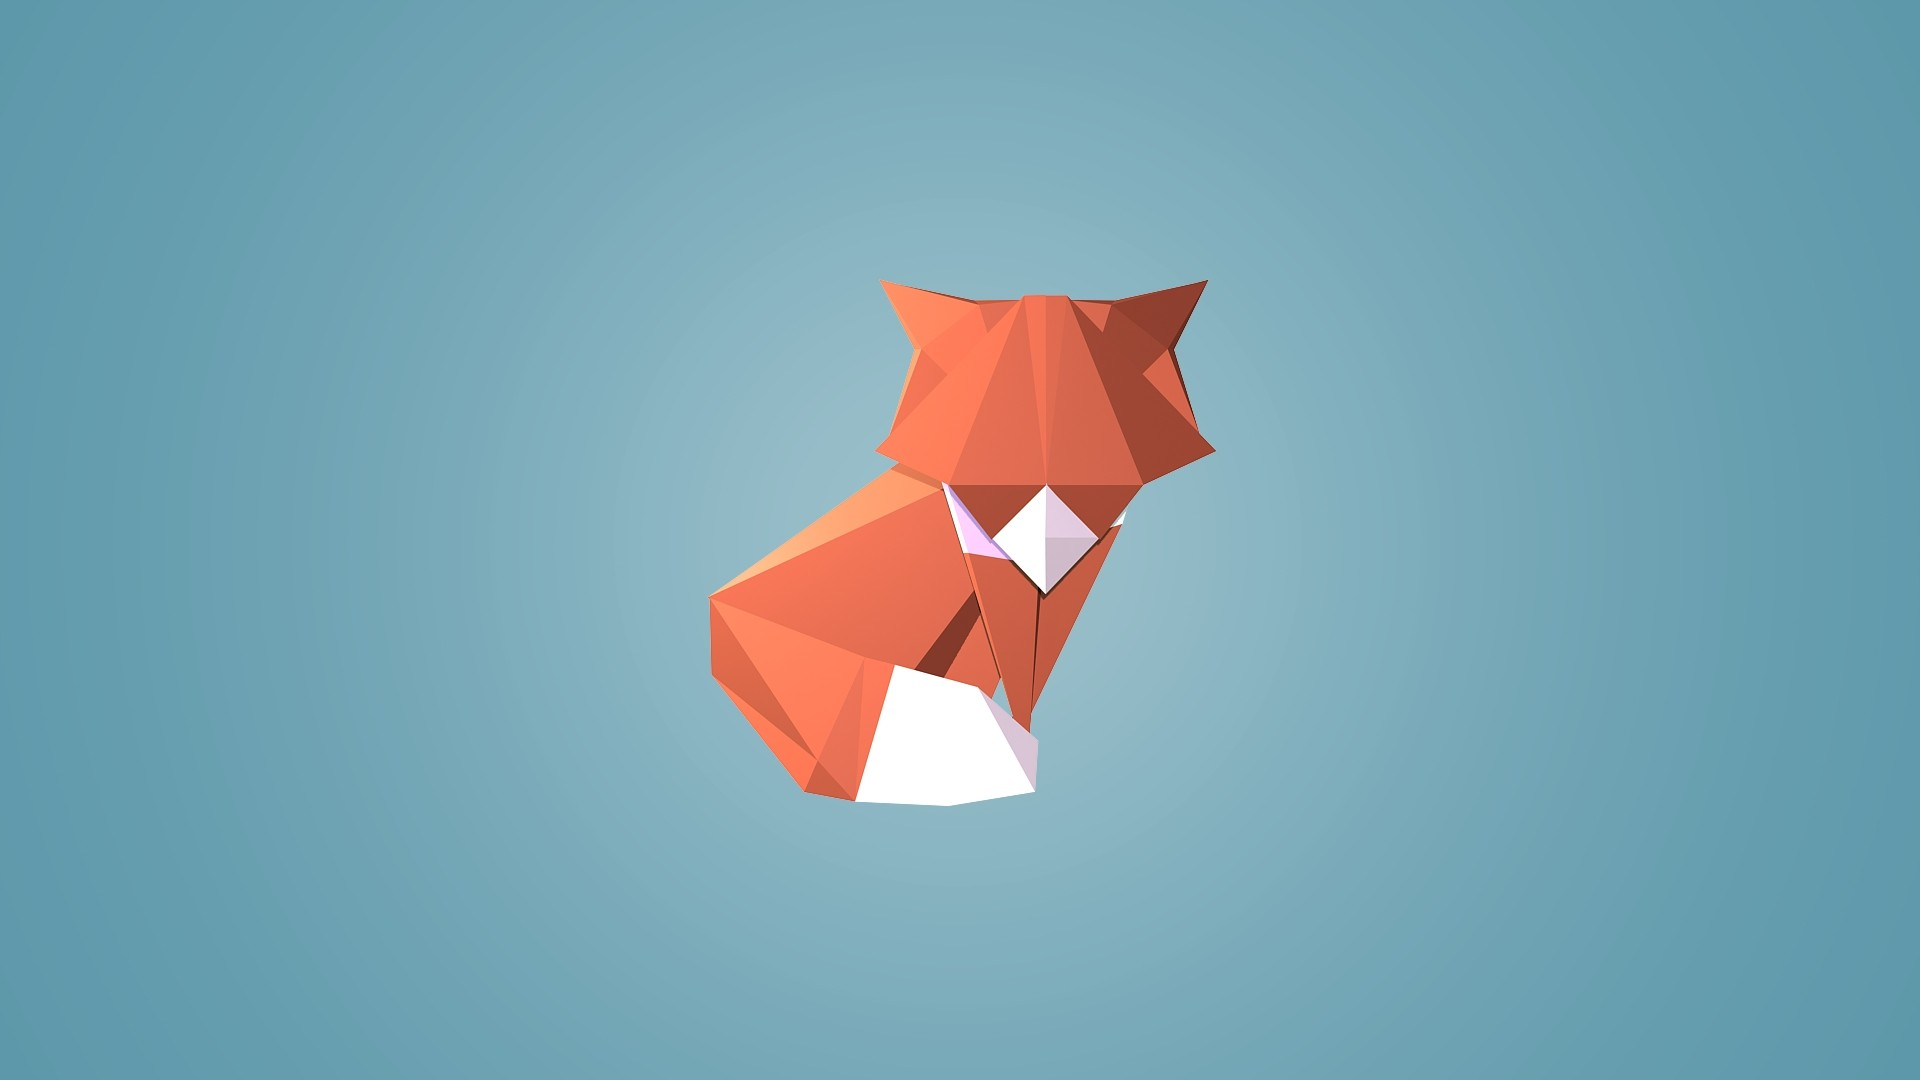 Cute Origami hd wallpaper download